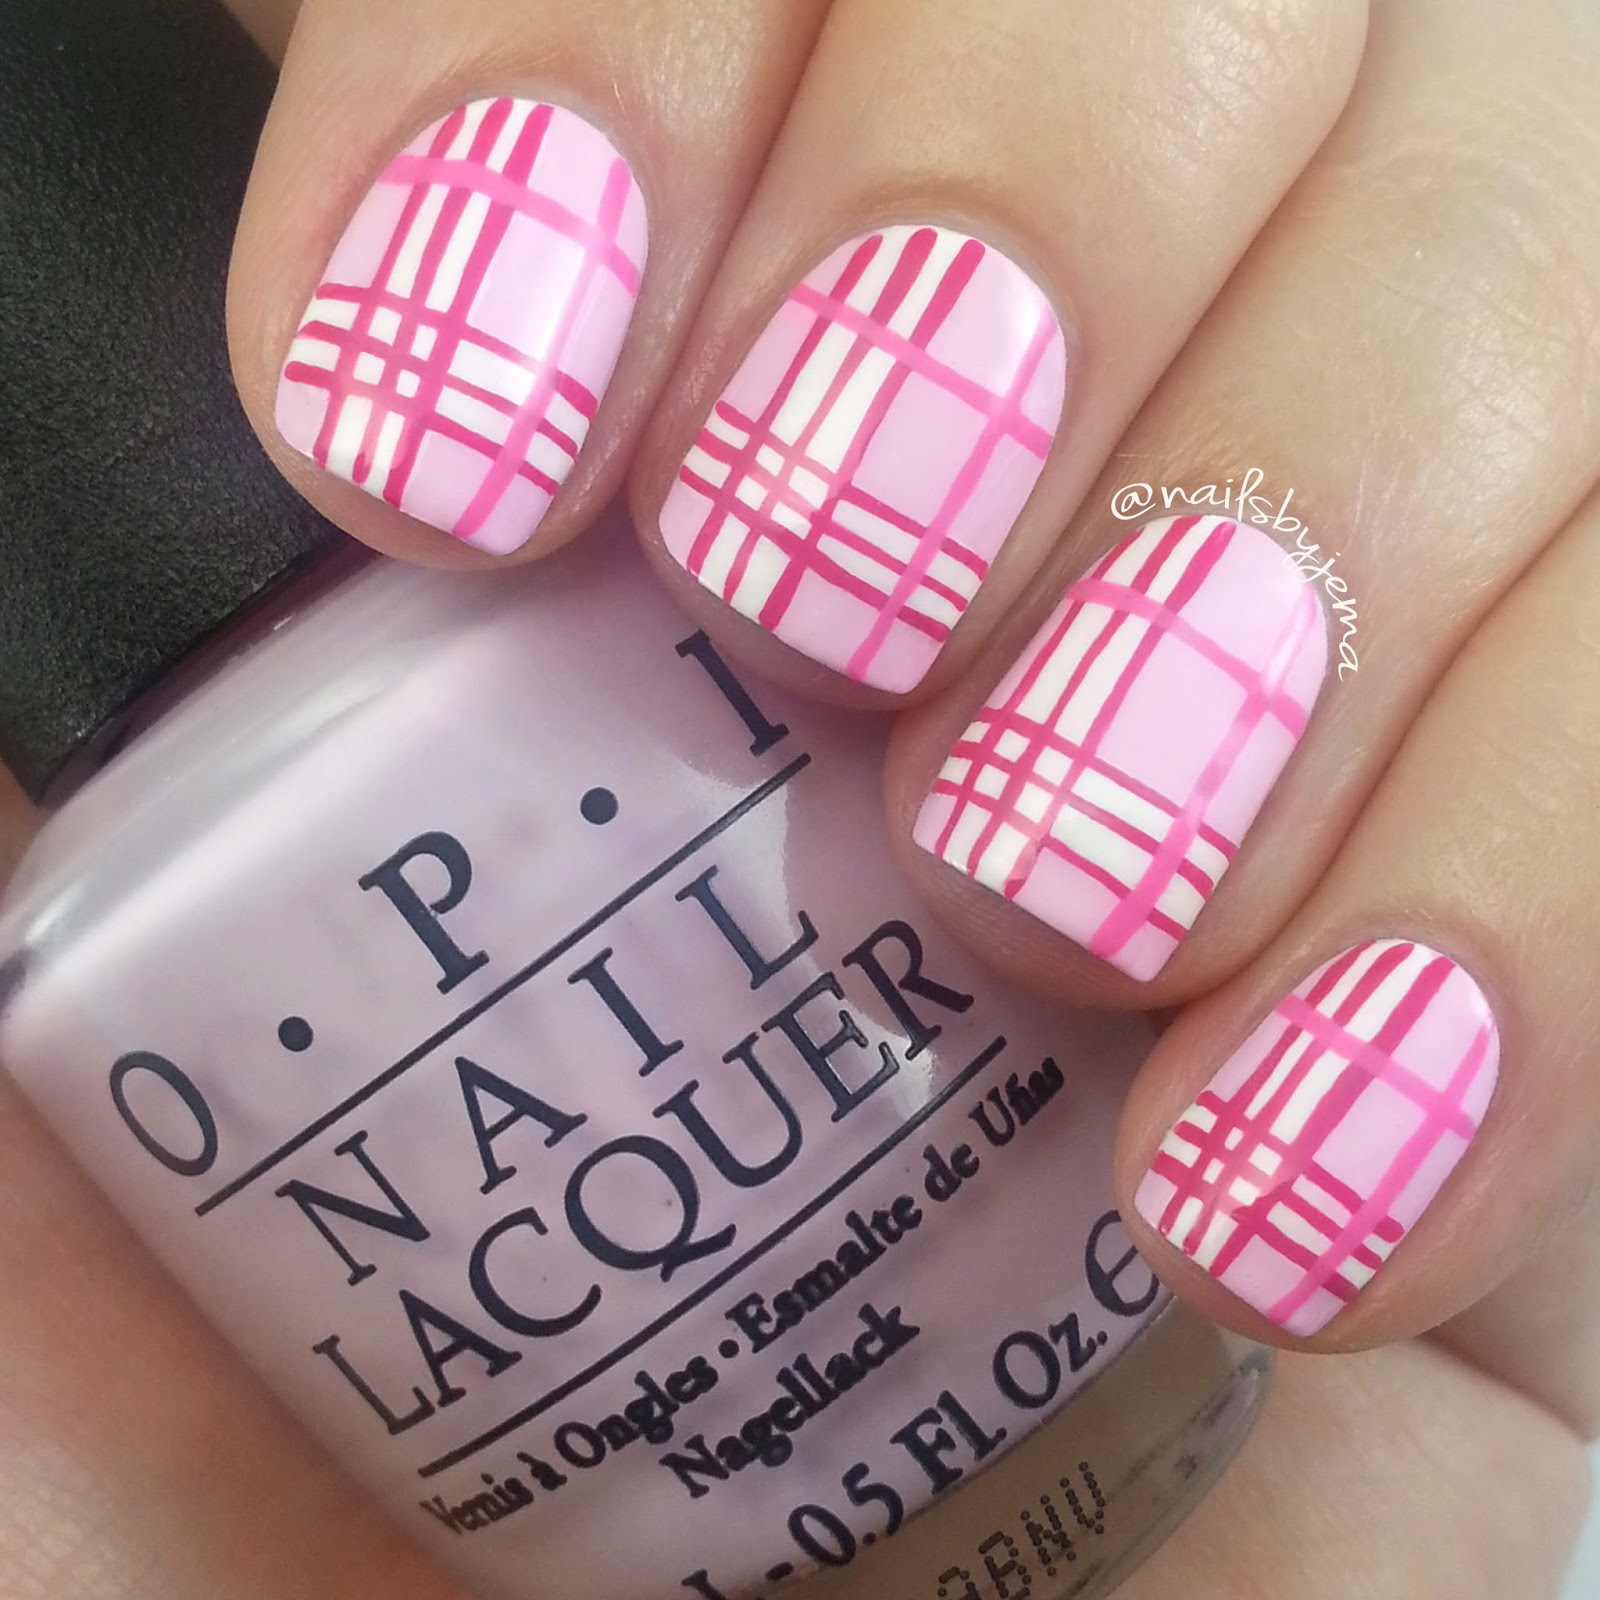 Polishes Used Picture Polish Candy Opi Mod About You Kiss Me On My Tulips Alpine Snow I A Long Bristle Nail Art Brush From Ebay To Paint